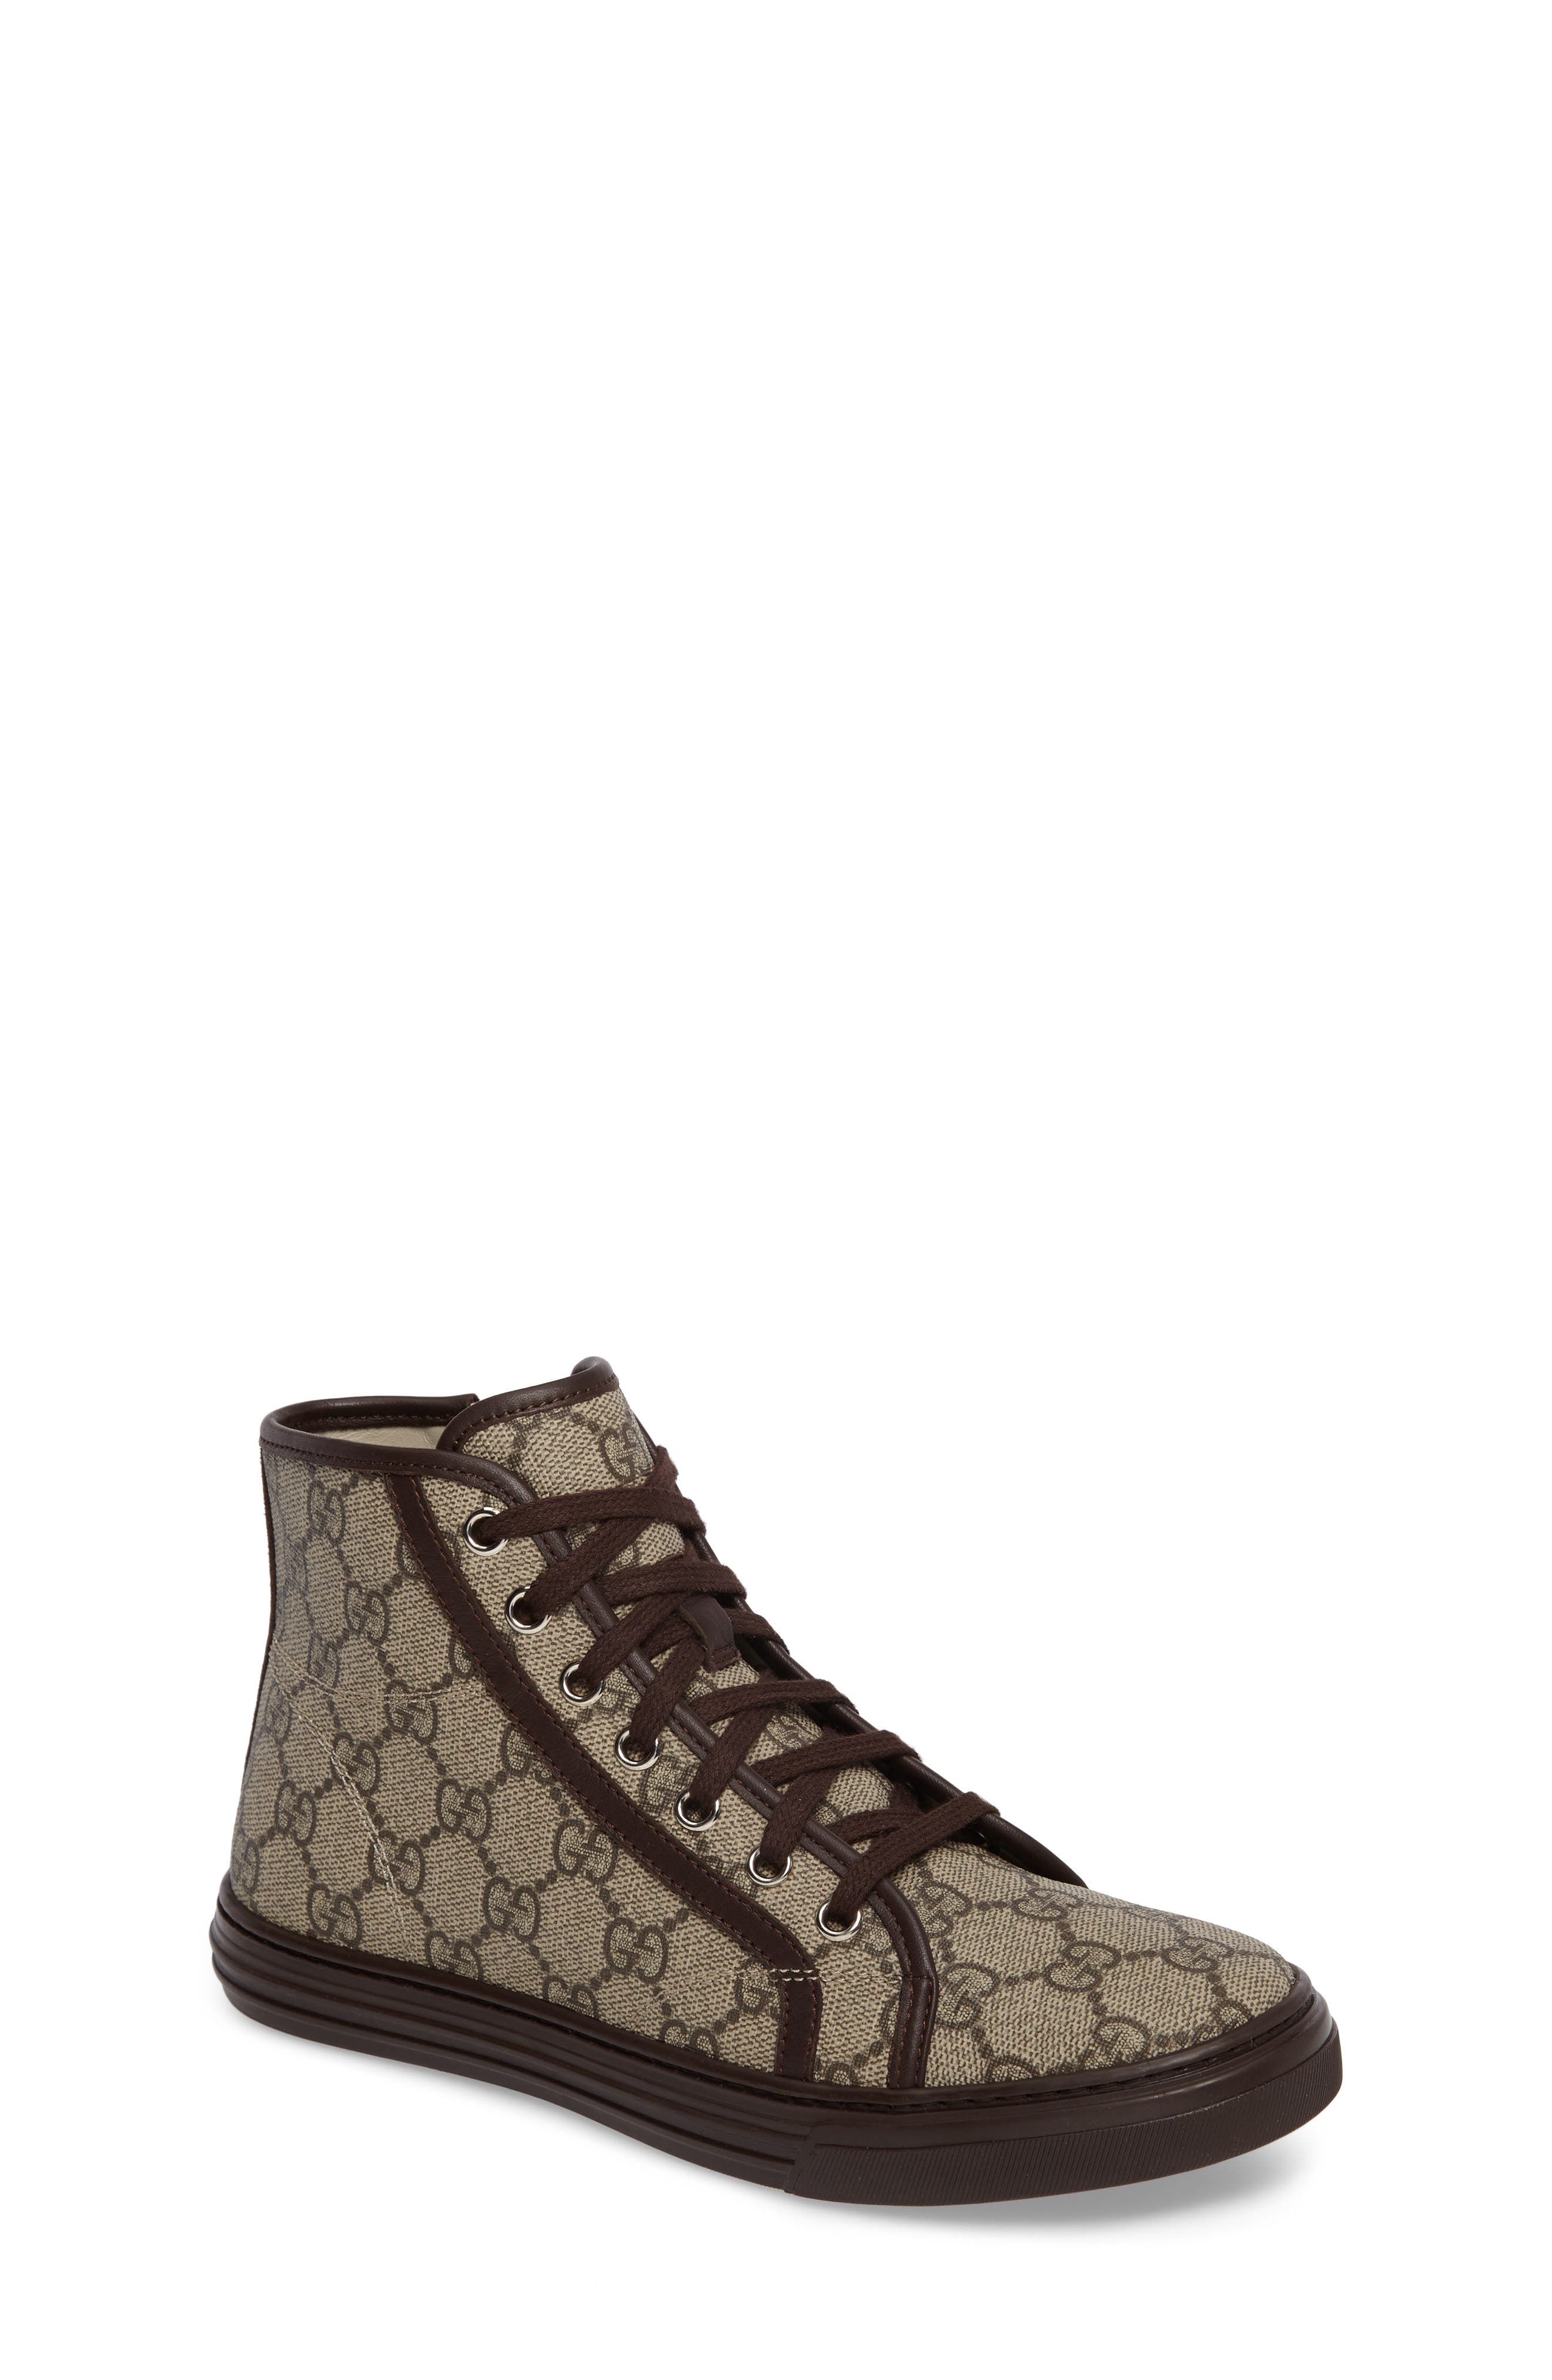 Gucci California High Top Sneaker (Baby, Walker, Toddler, Little Kid & Big Kid)